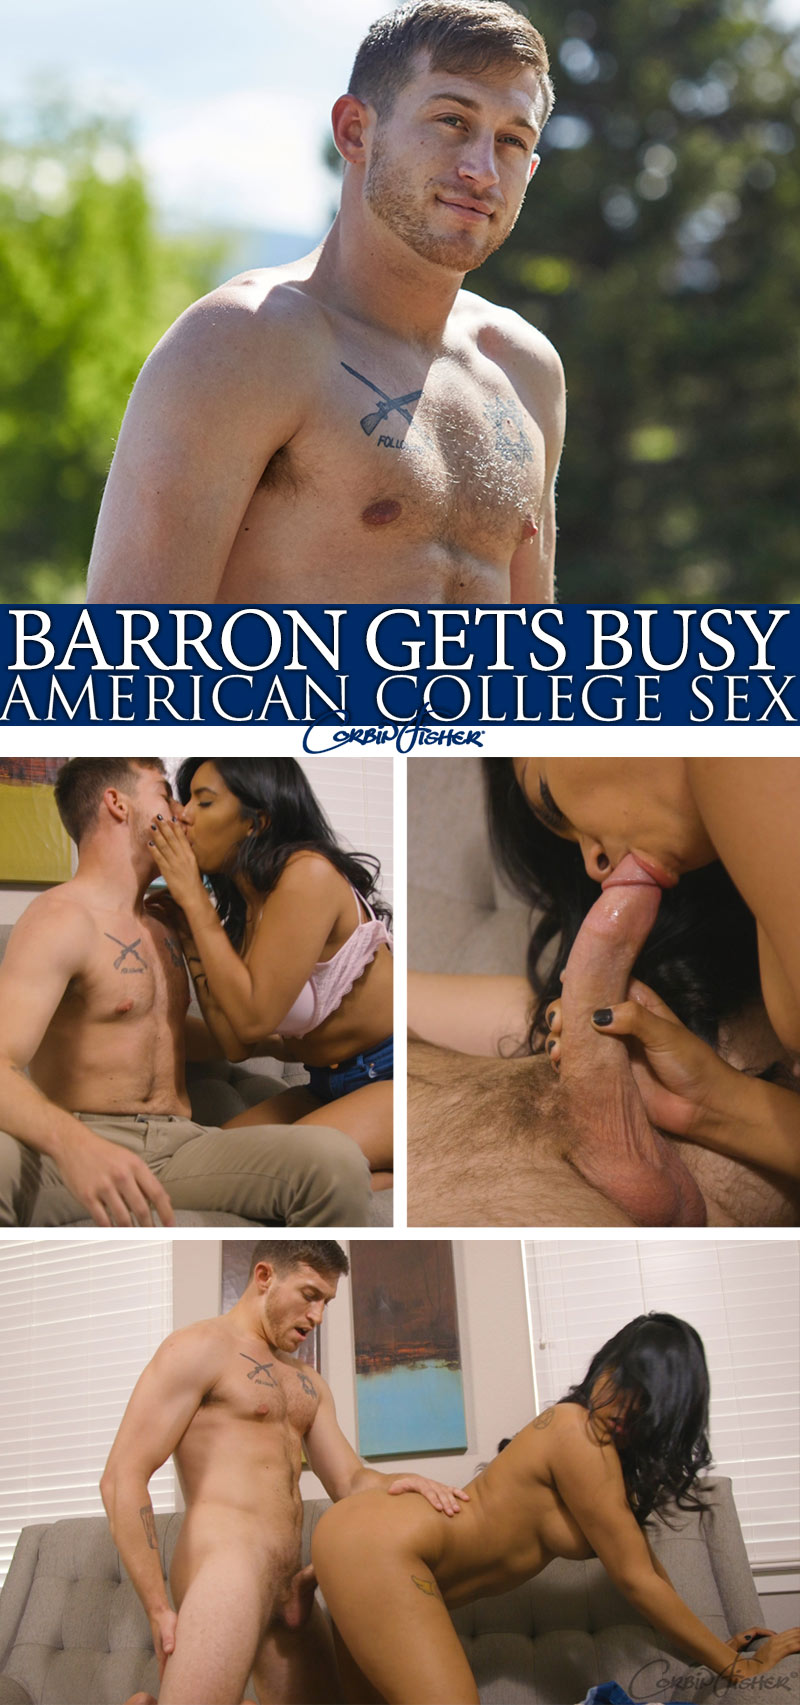 Barron Gets Busy at AmateurCollegeSex